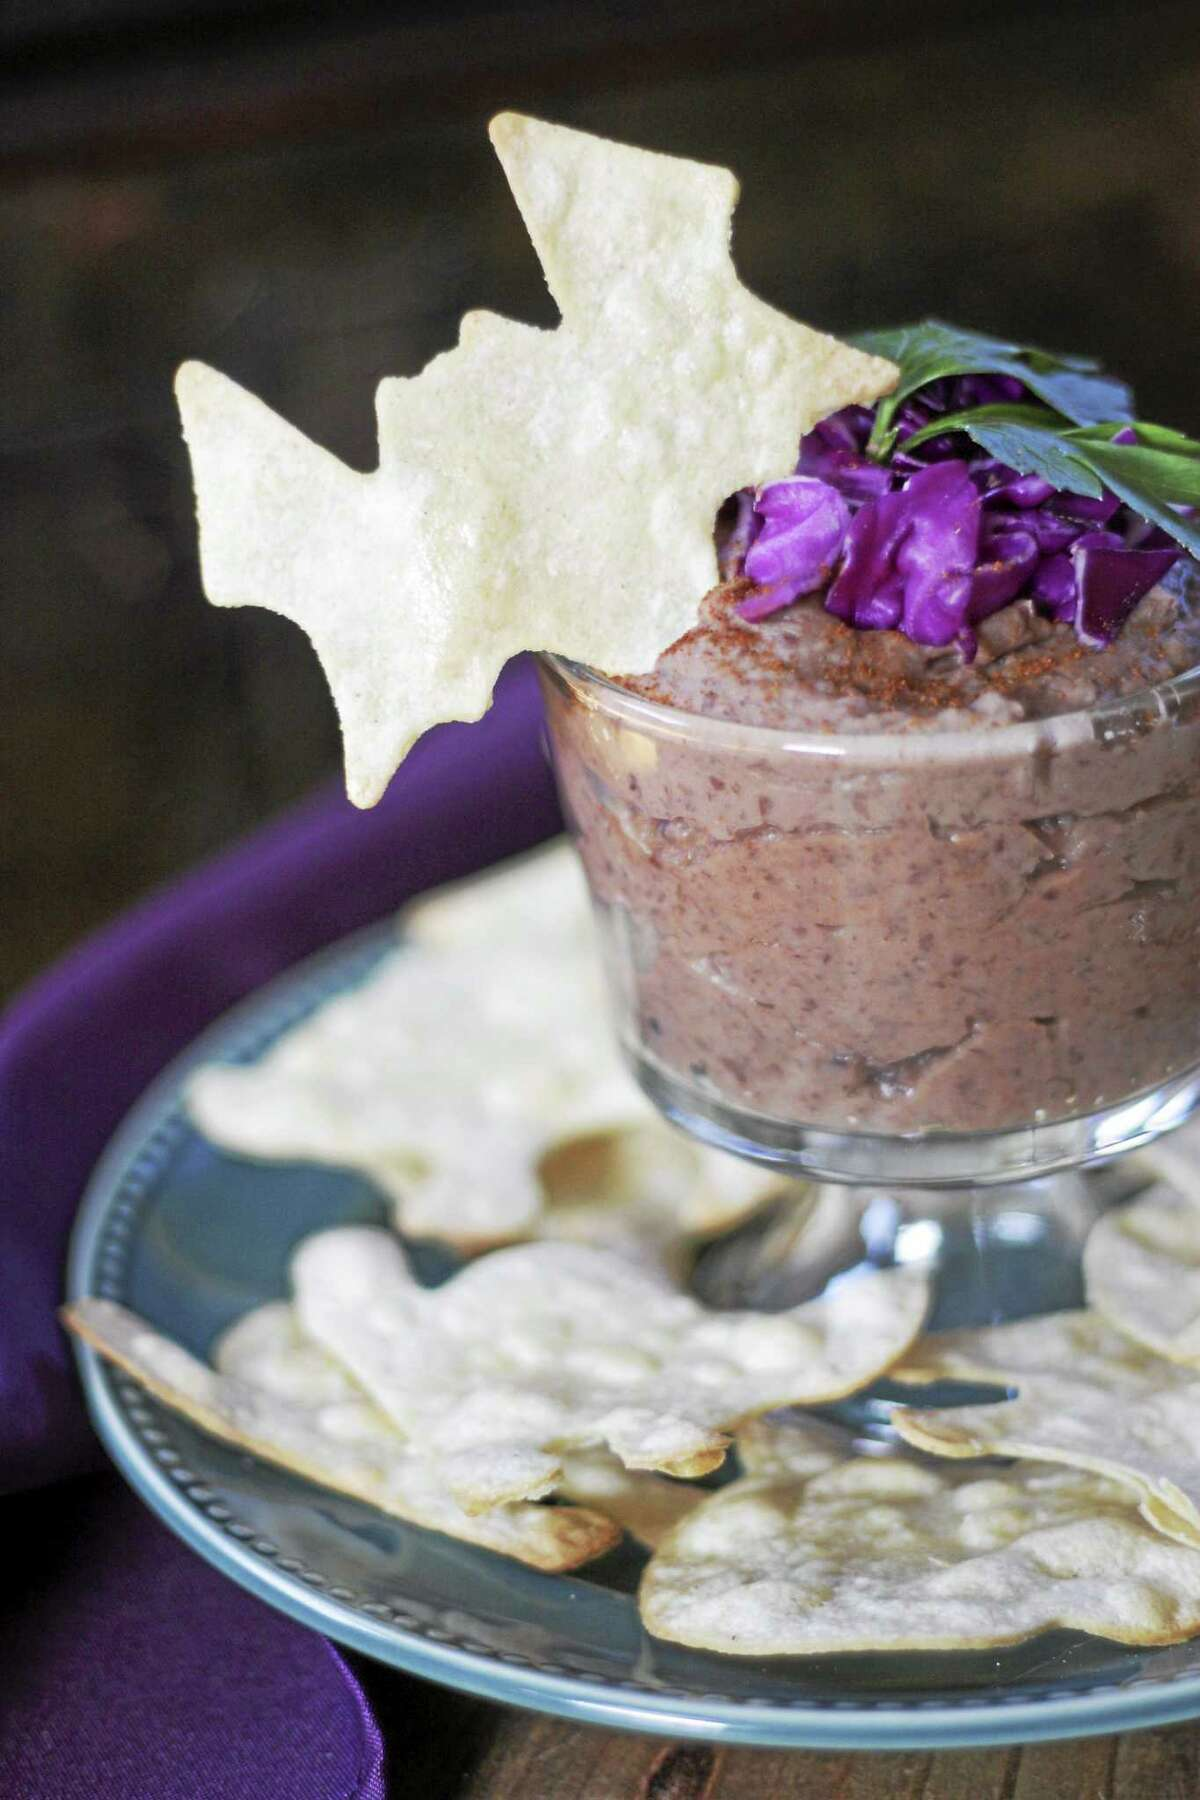 It's Only Natural Restaurant of Middletown offers this recipe for ghostly black bean dip.